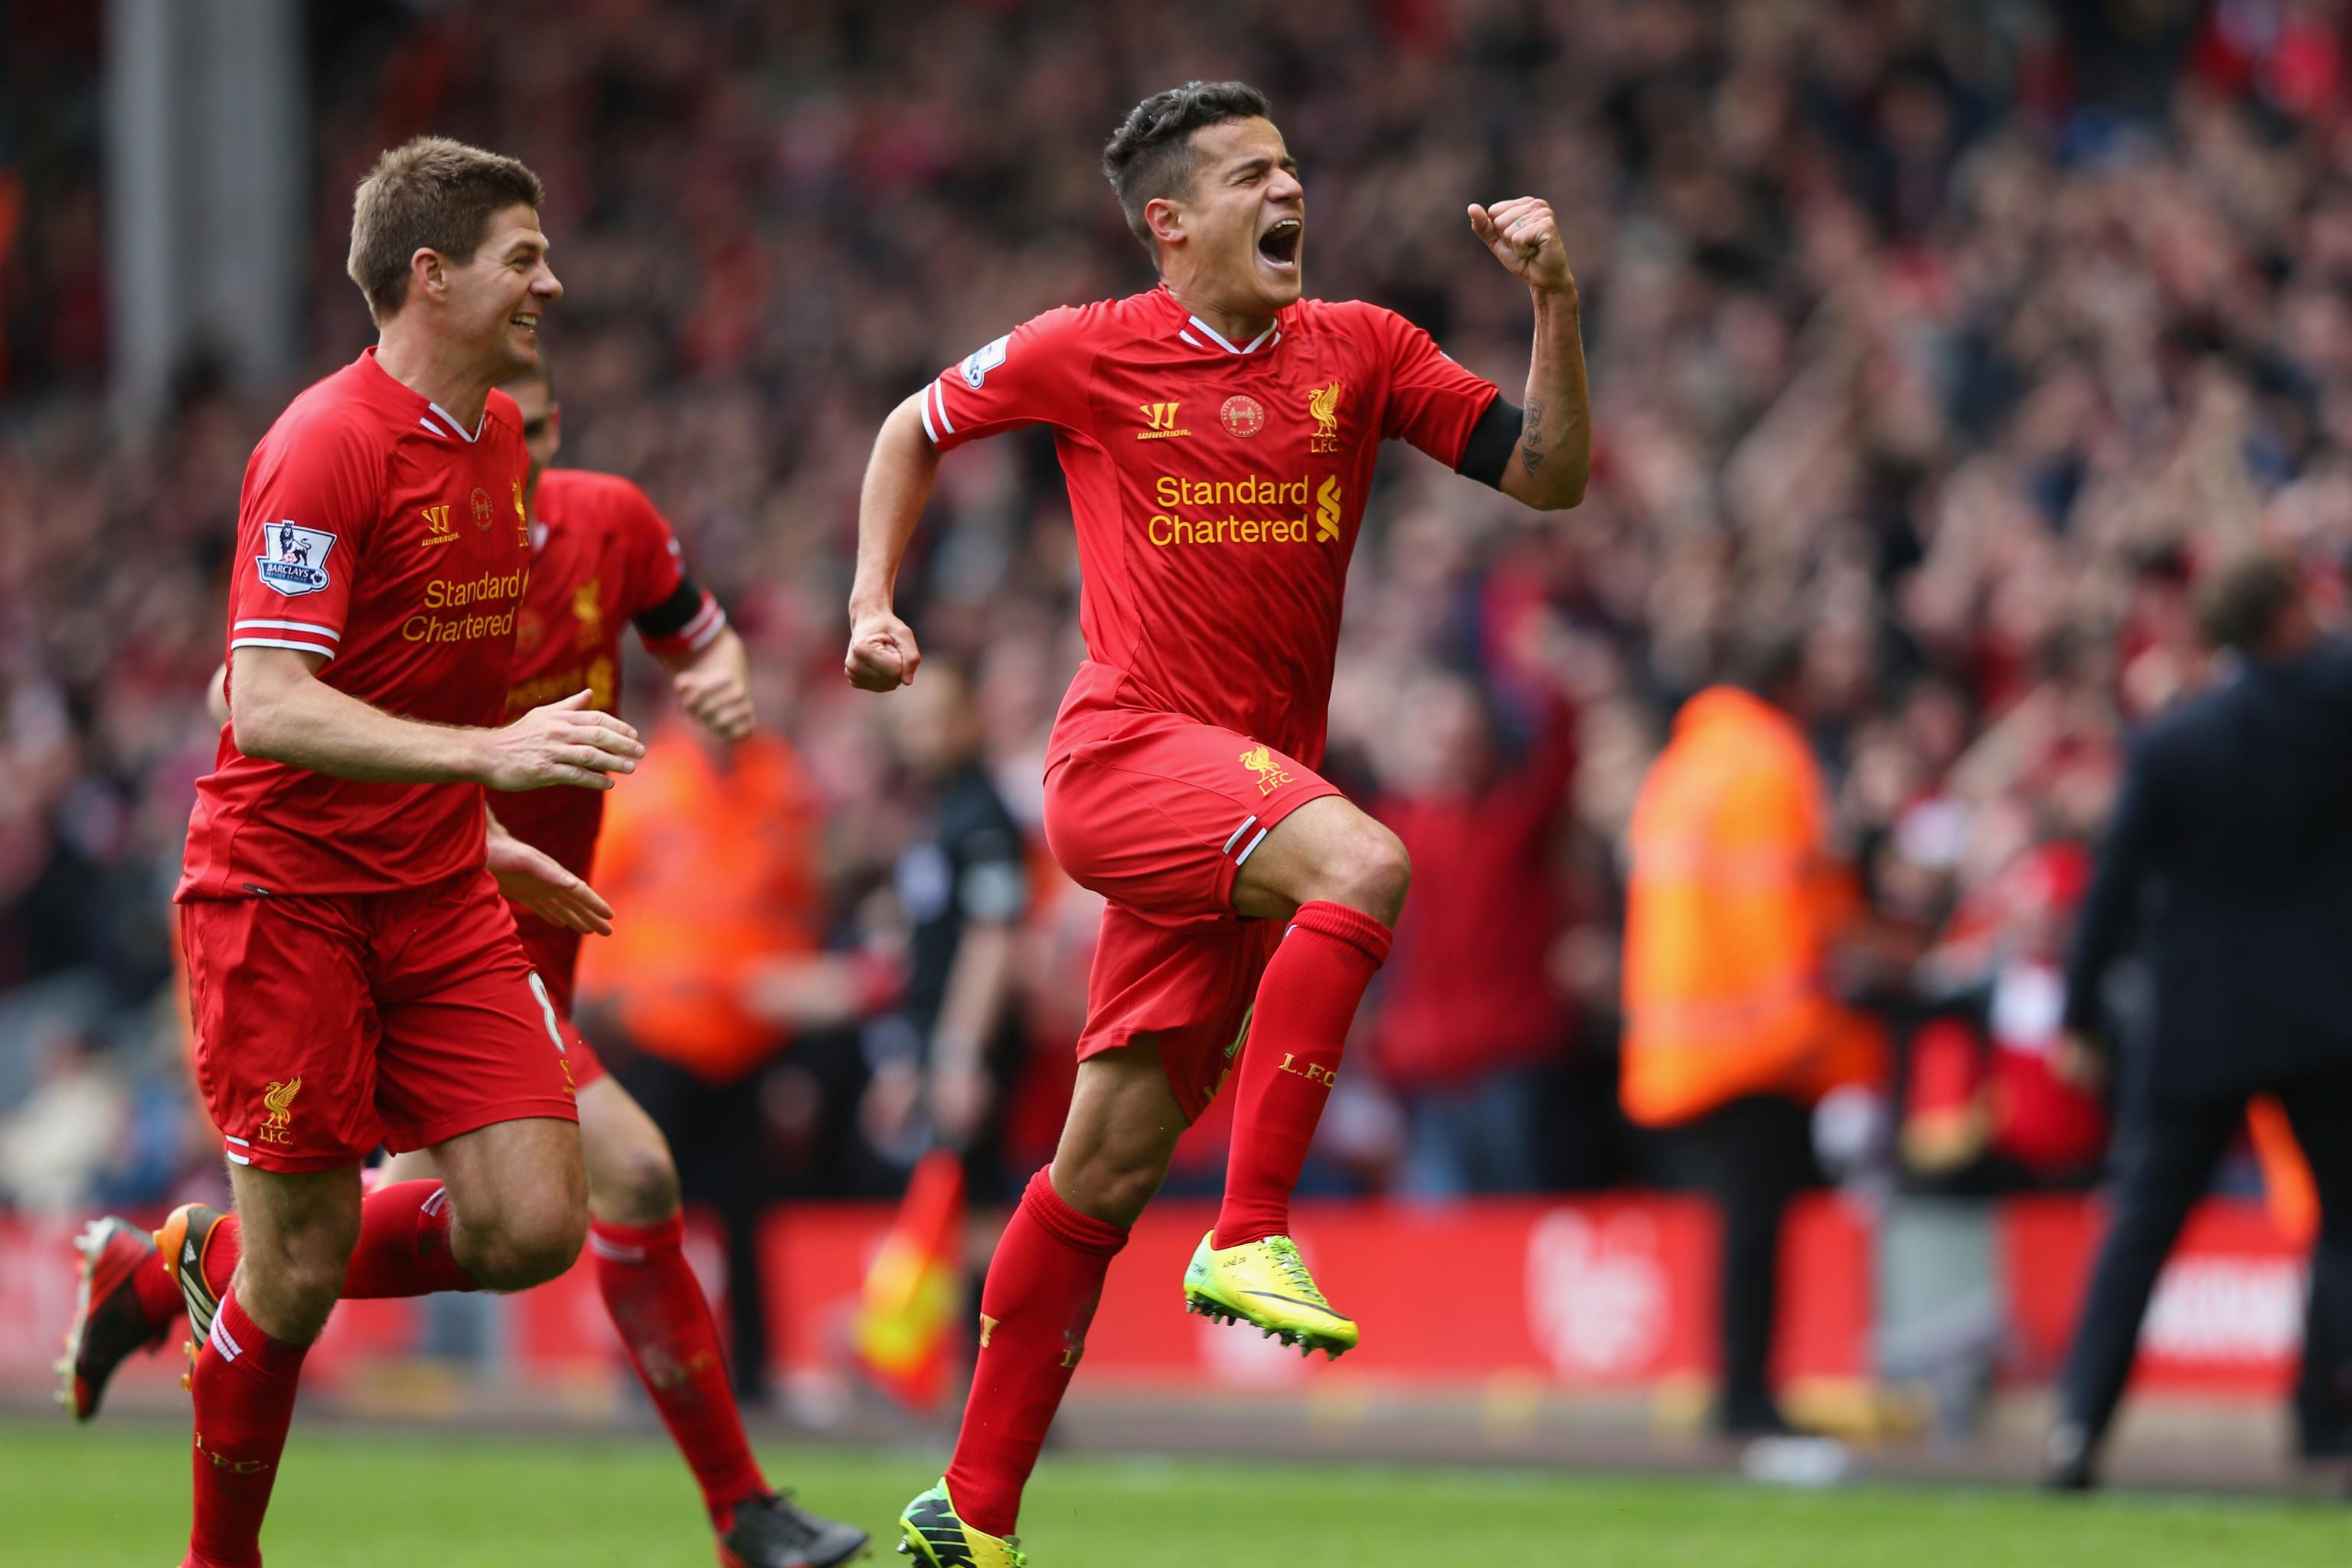 Liverpool Vs Manchester City Score Grades And Post Match Reaction Bleacher Report Latest News Videos And Highlights